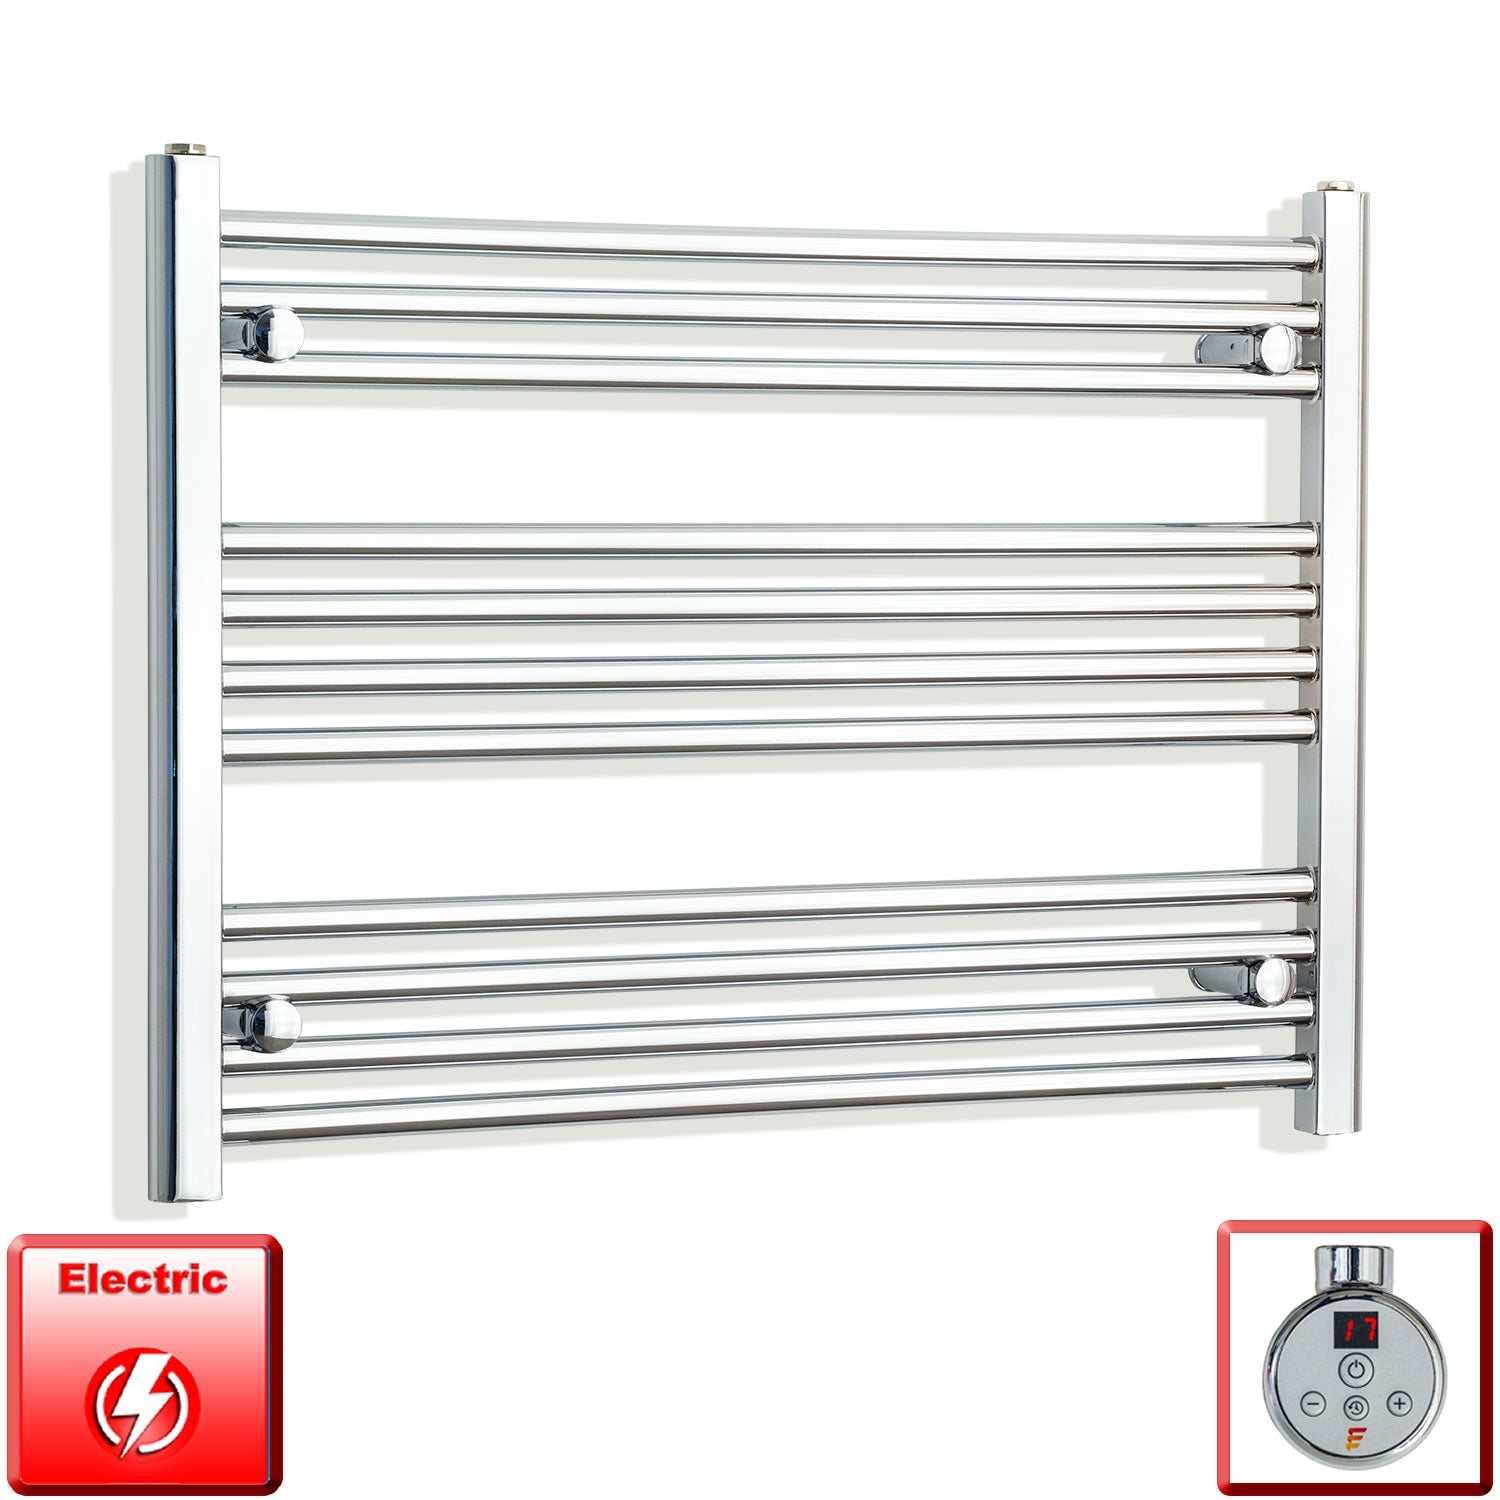 850mm Wide 600mm High Pre-Filled Chrome Electric Towel Rail Radiator With Thermostatic DIGI Element